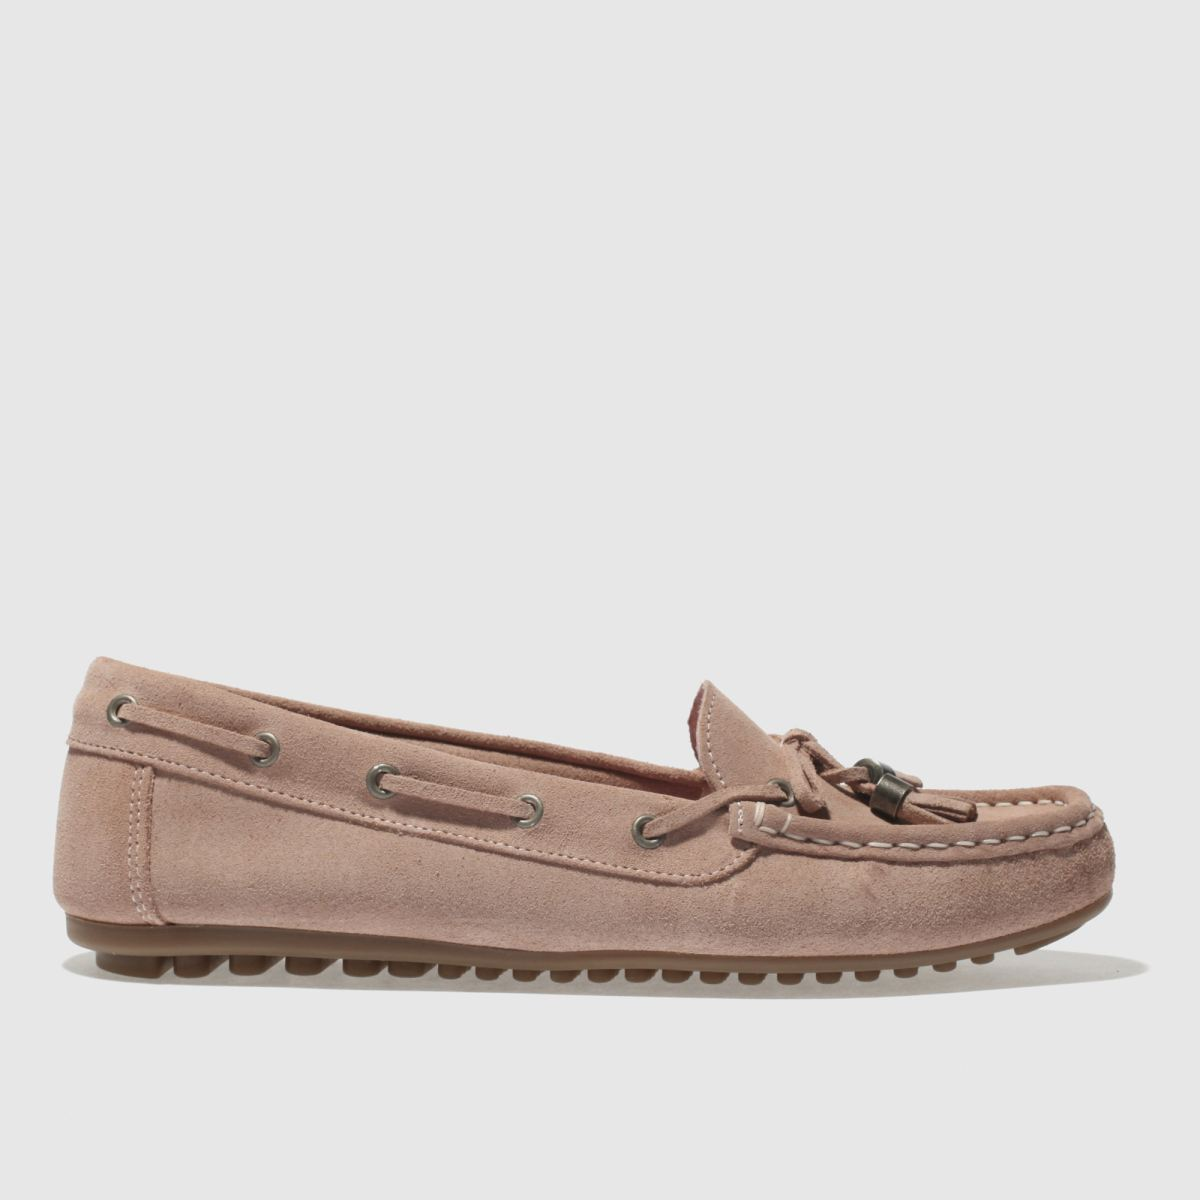 Schuh Pink Spin Around Flat Shoes